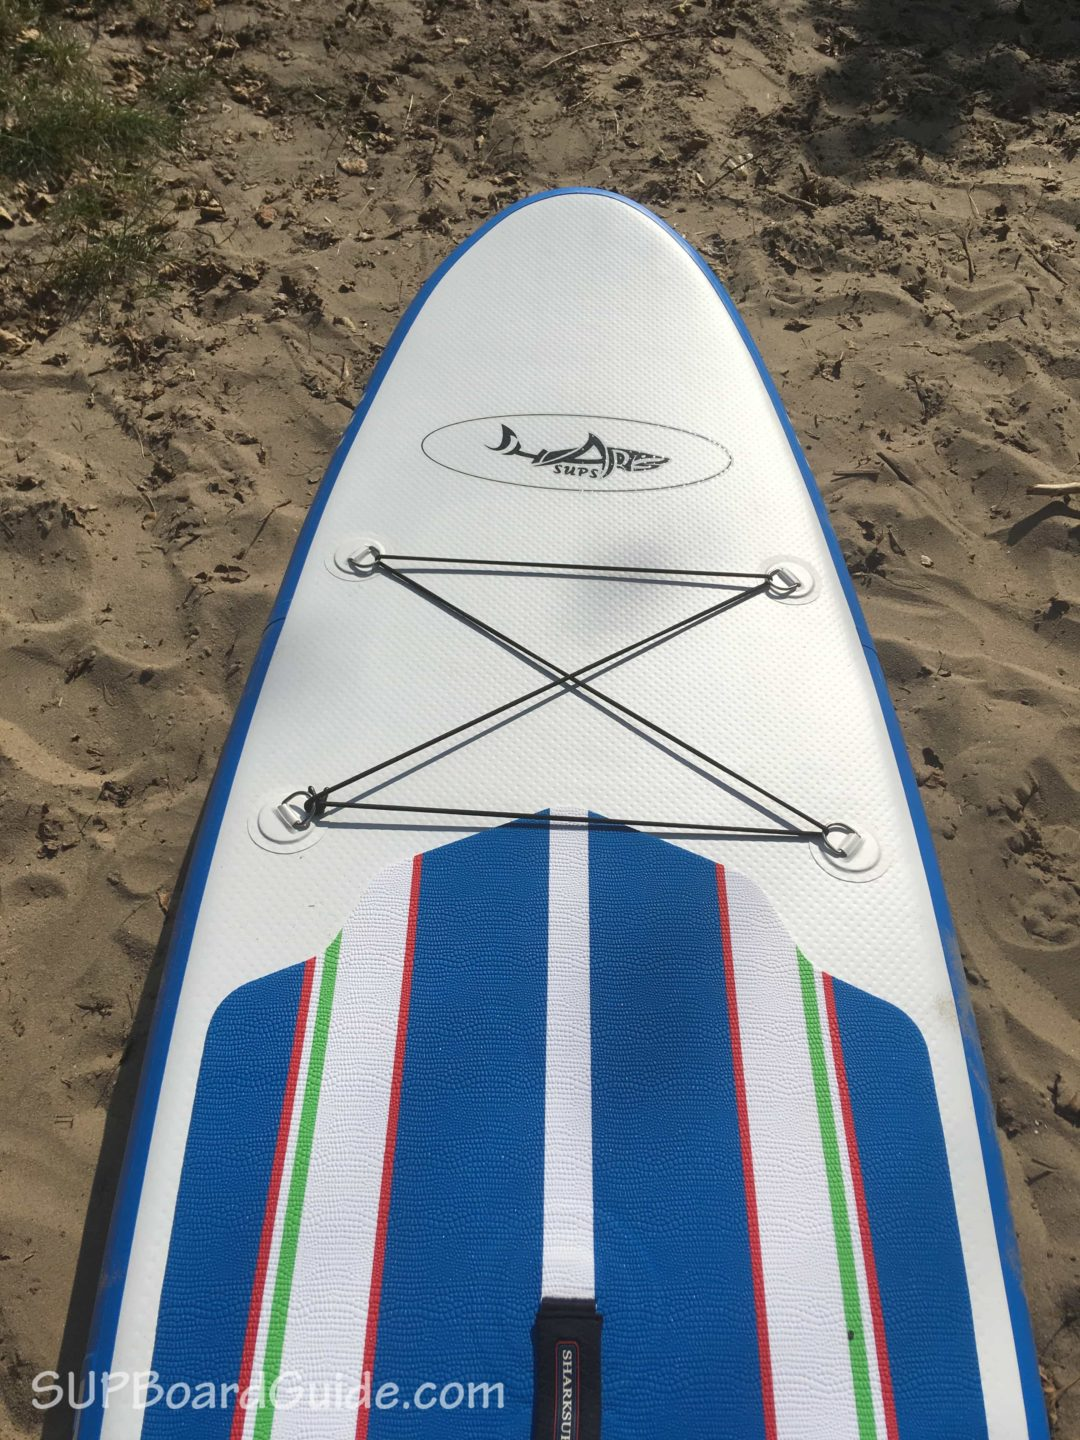 Shark Board Design